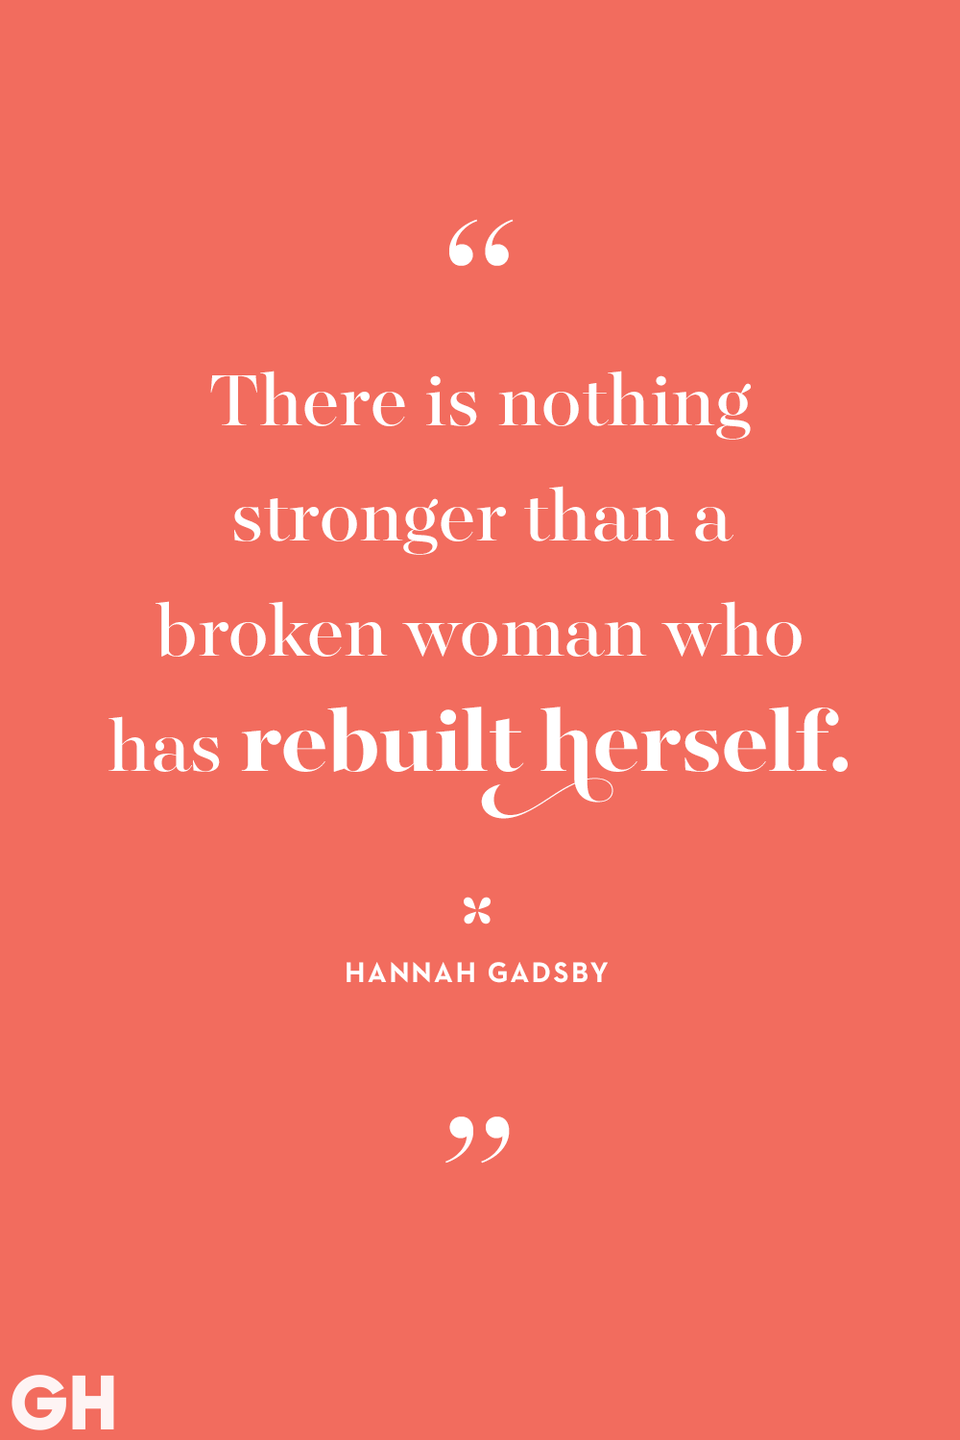 <p>There is nothing stronger than a broken woman who has rebuilt herself.</p>